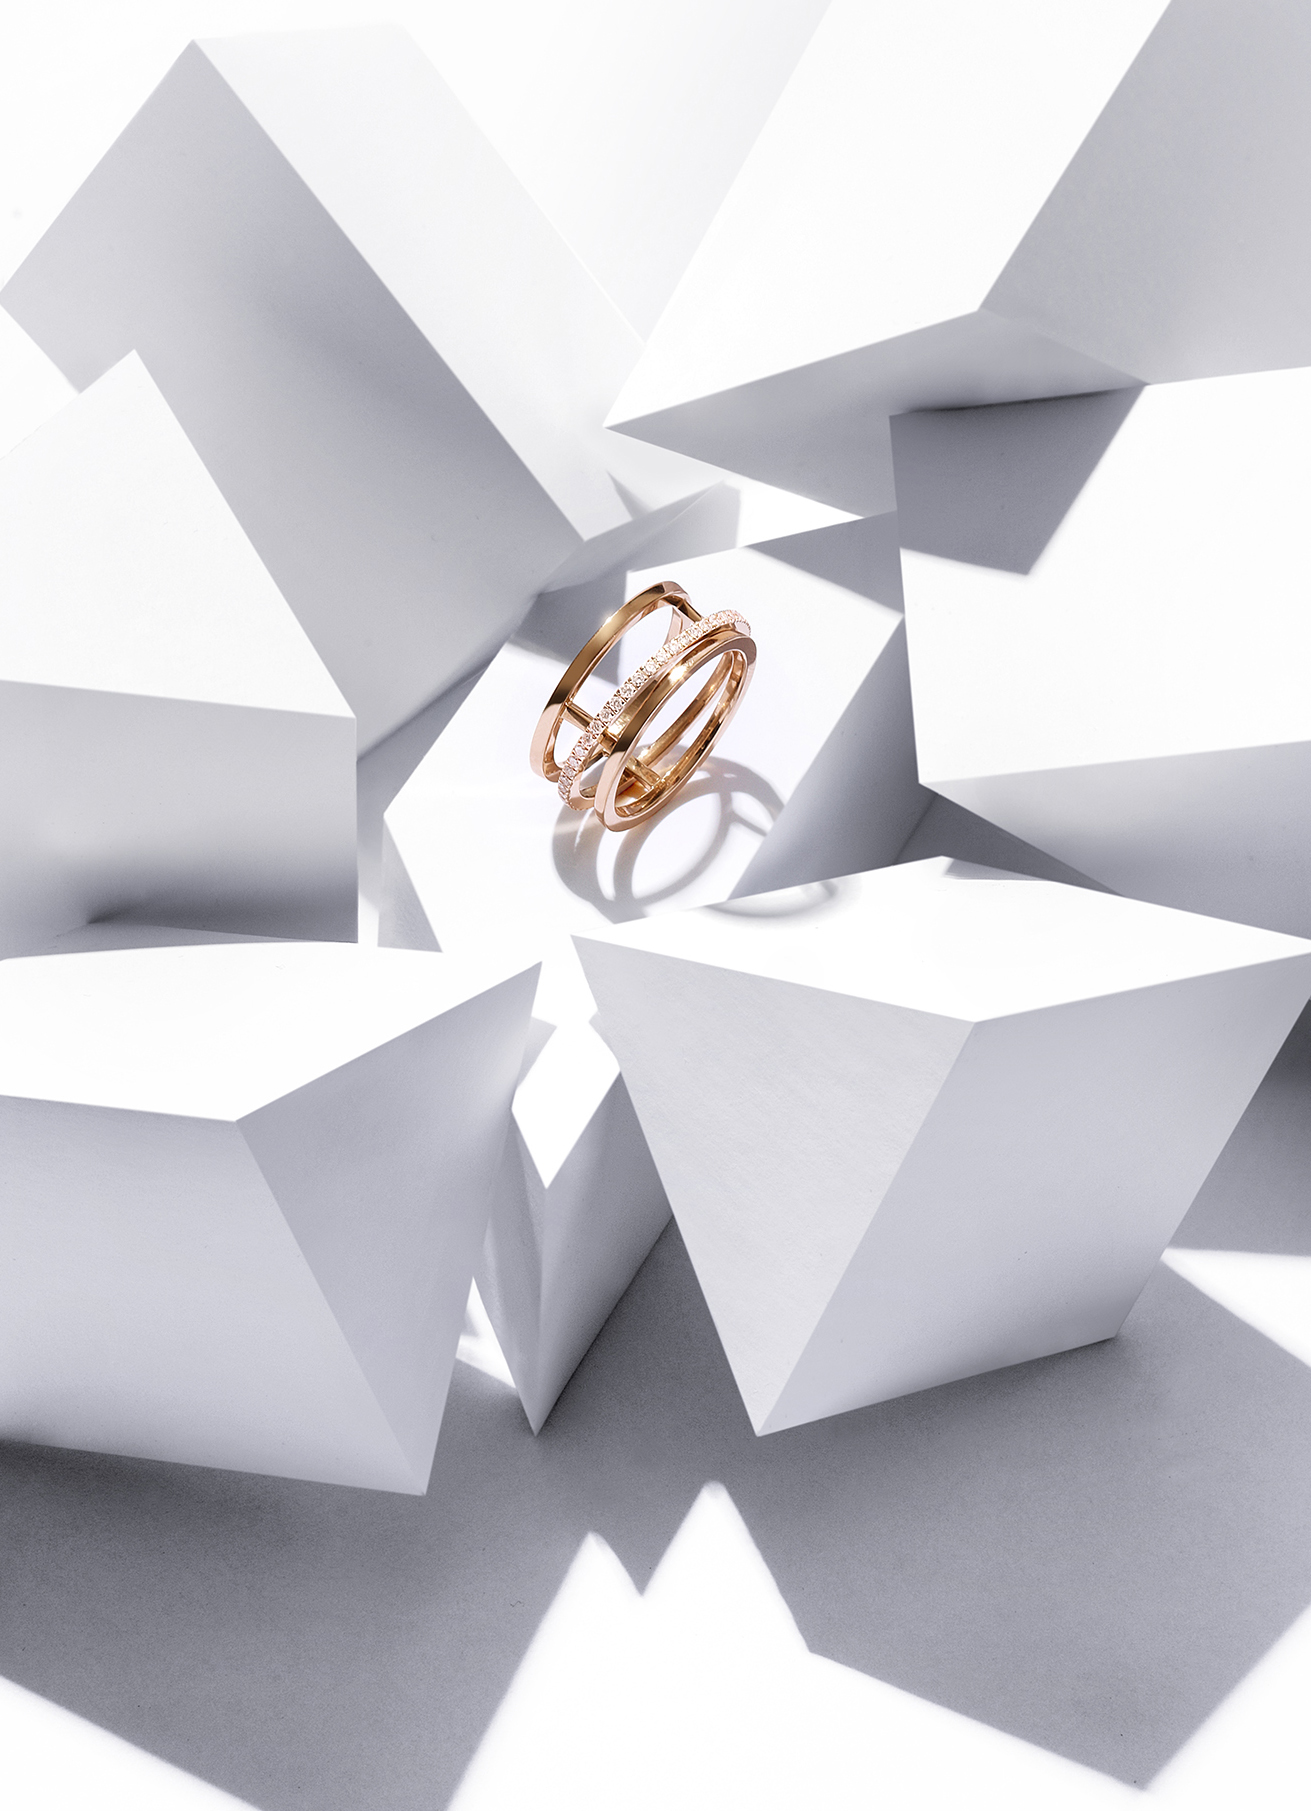 De Beers  Horizon  ring in yellow gold and white diamonds. Approx 0.36 carats. £2,850